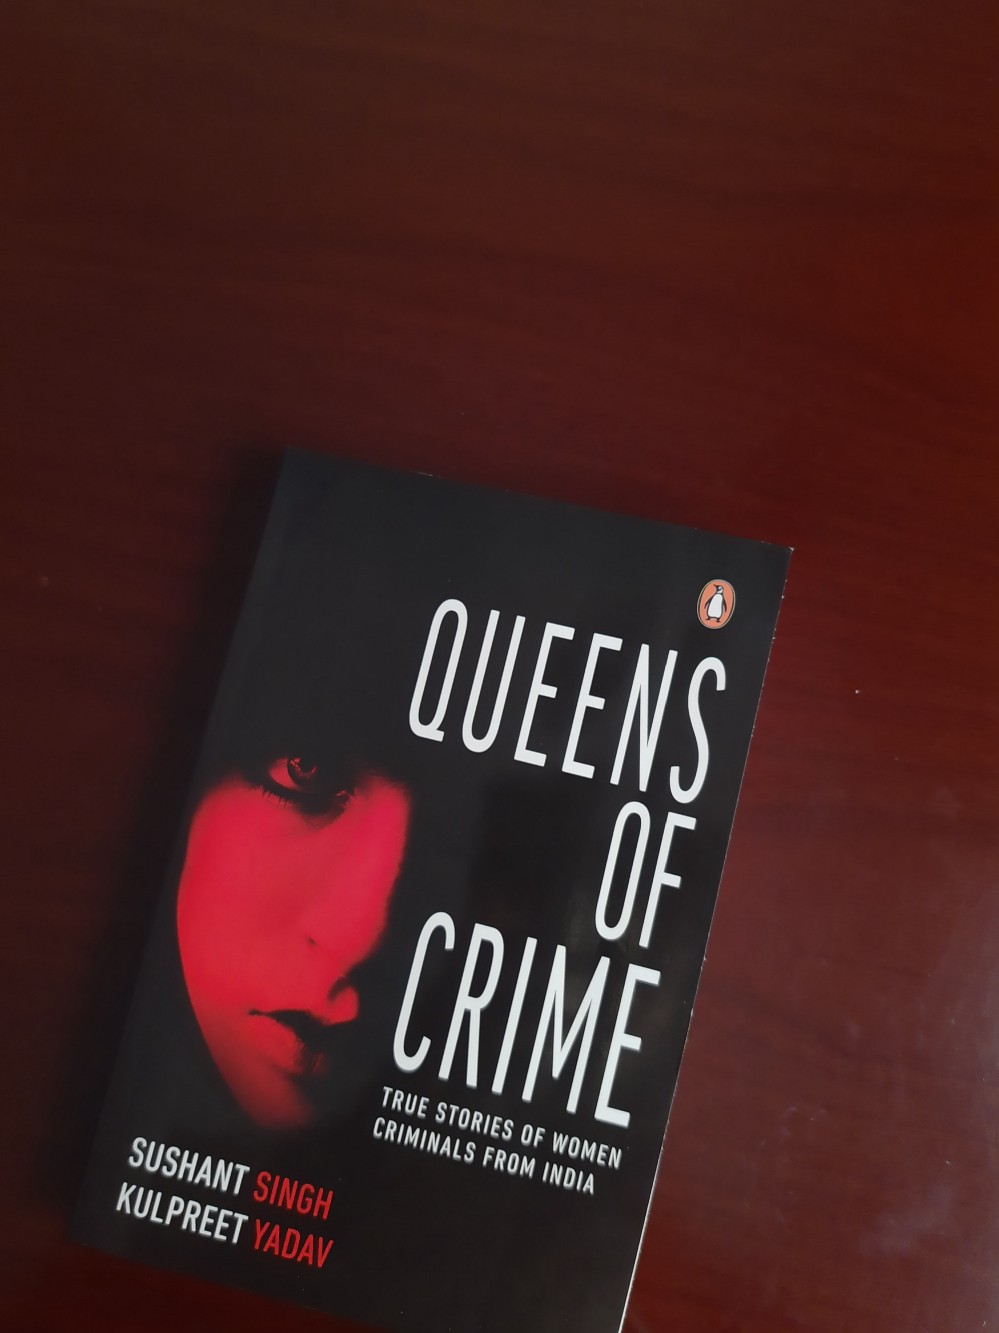 Book Review - Queens of Crime : True Stories of Women Criminals from India  by Sushant Singh and Kulpreet Yadav